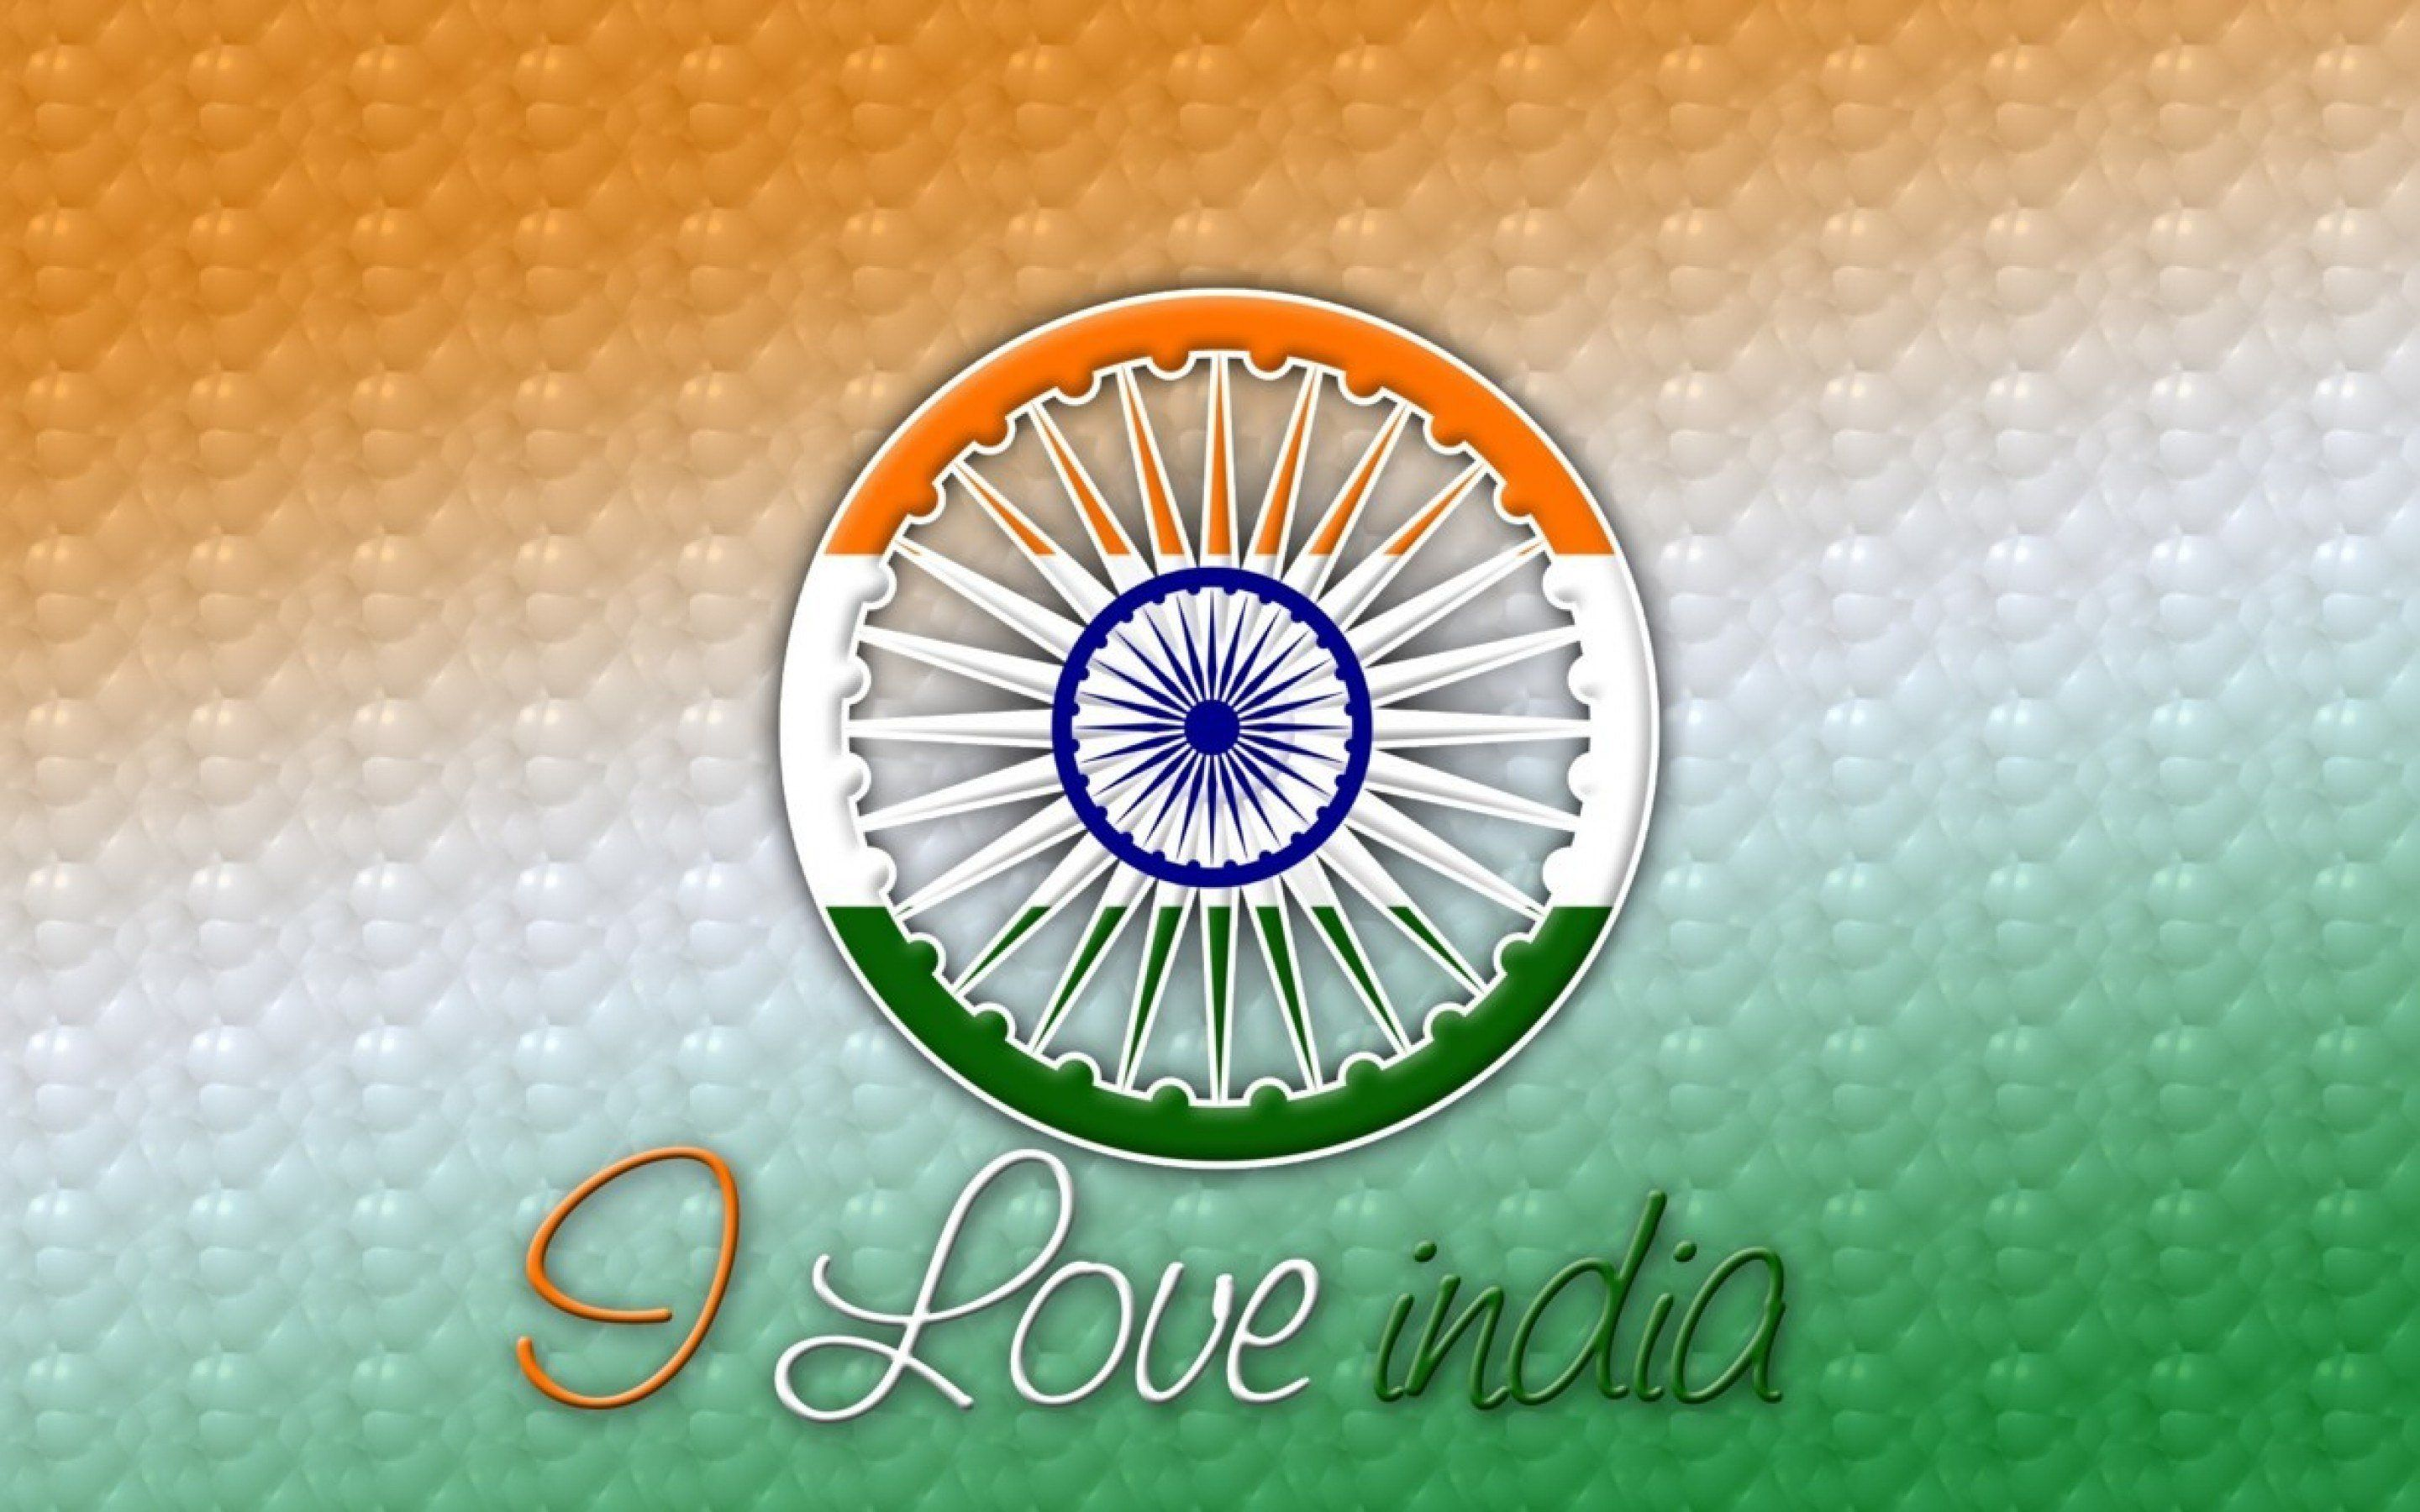 Happy 72th Independence Day Of India Hd Wallpapers With Quotes Independence Day Hd Independence Day Hd Wallpaper Independence Day Images